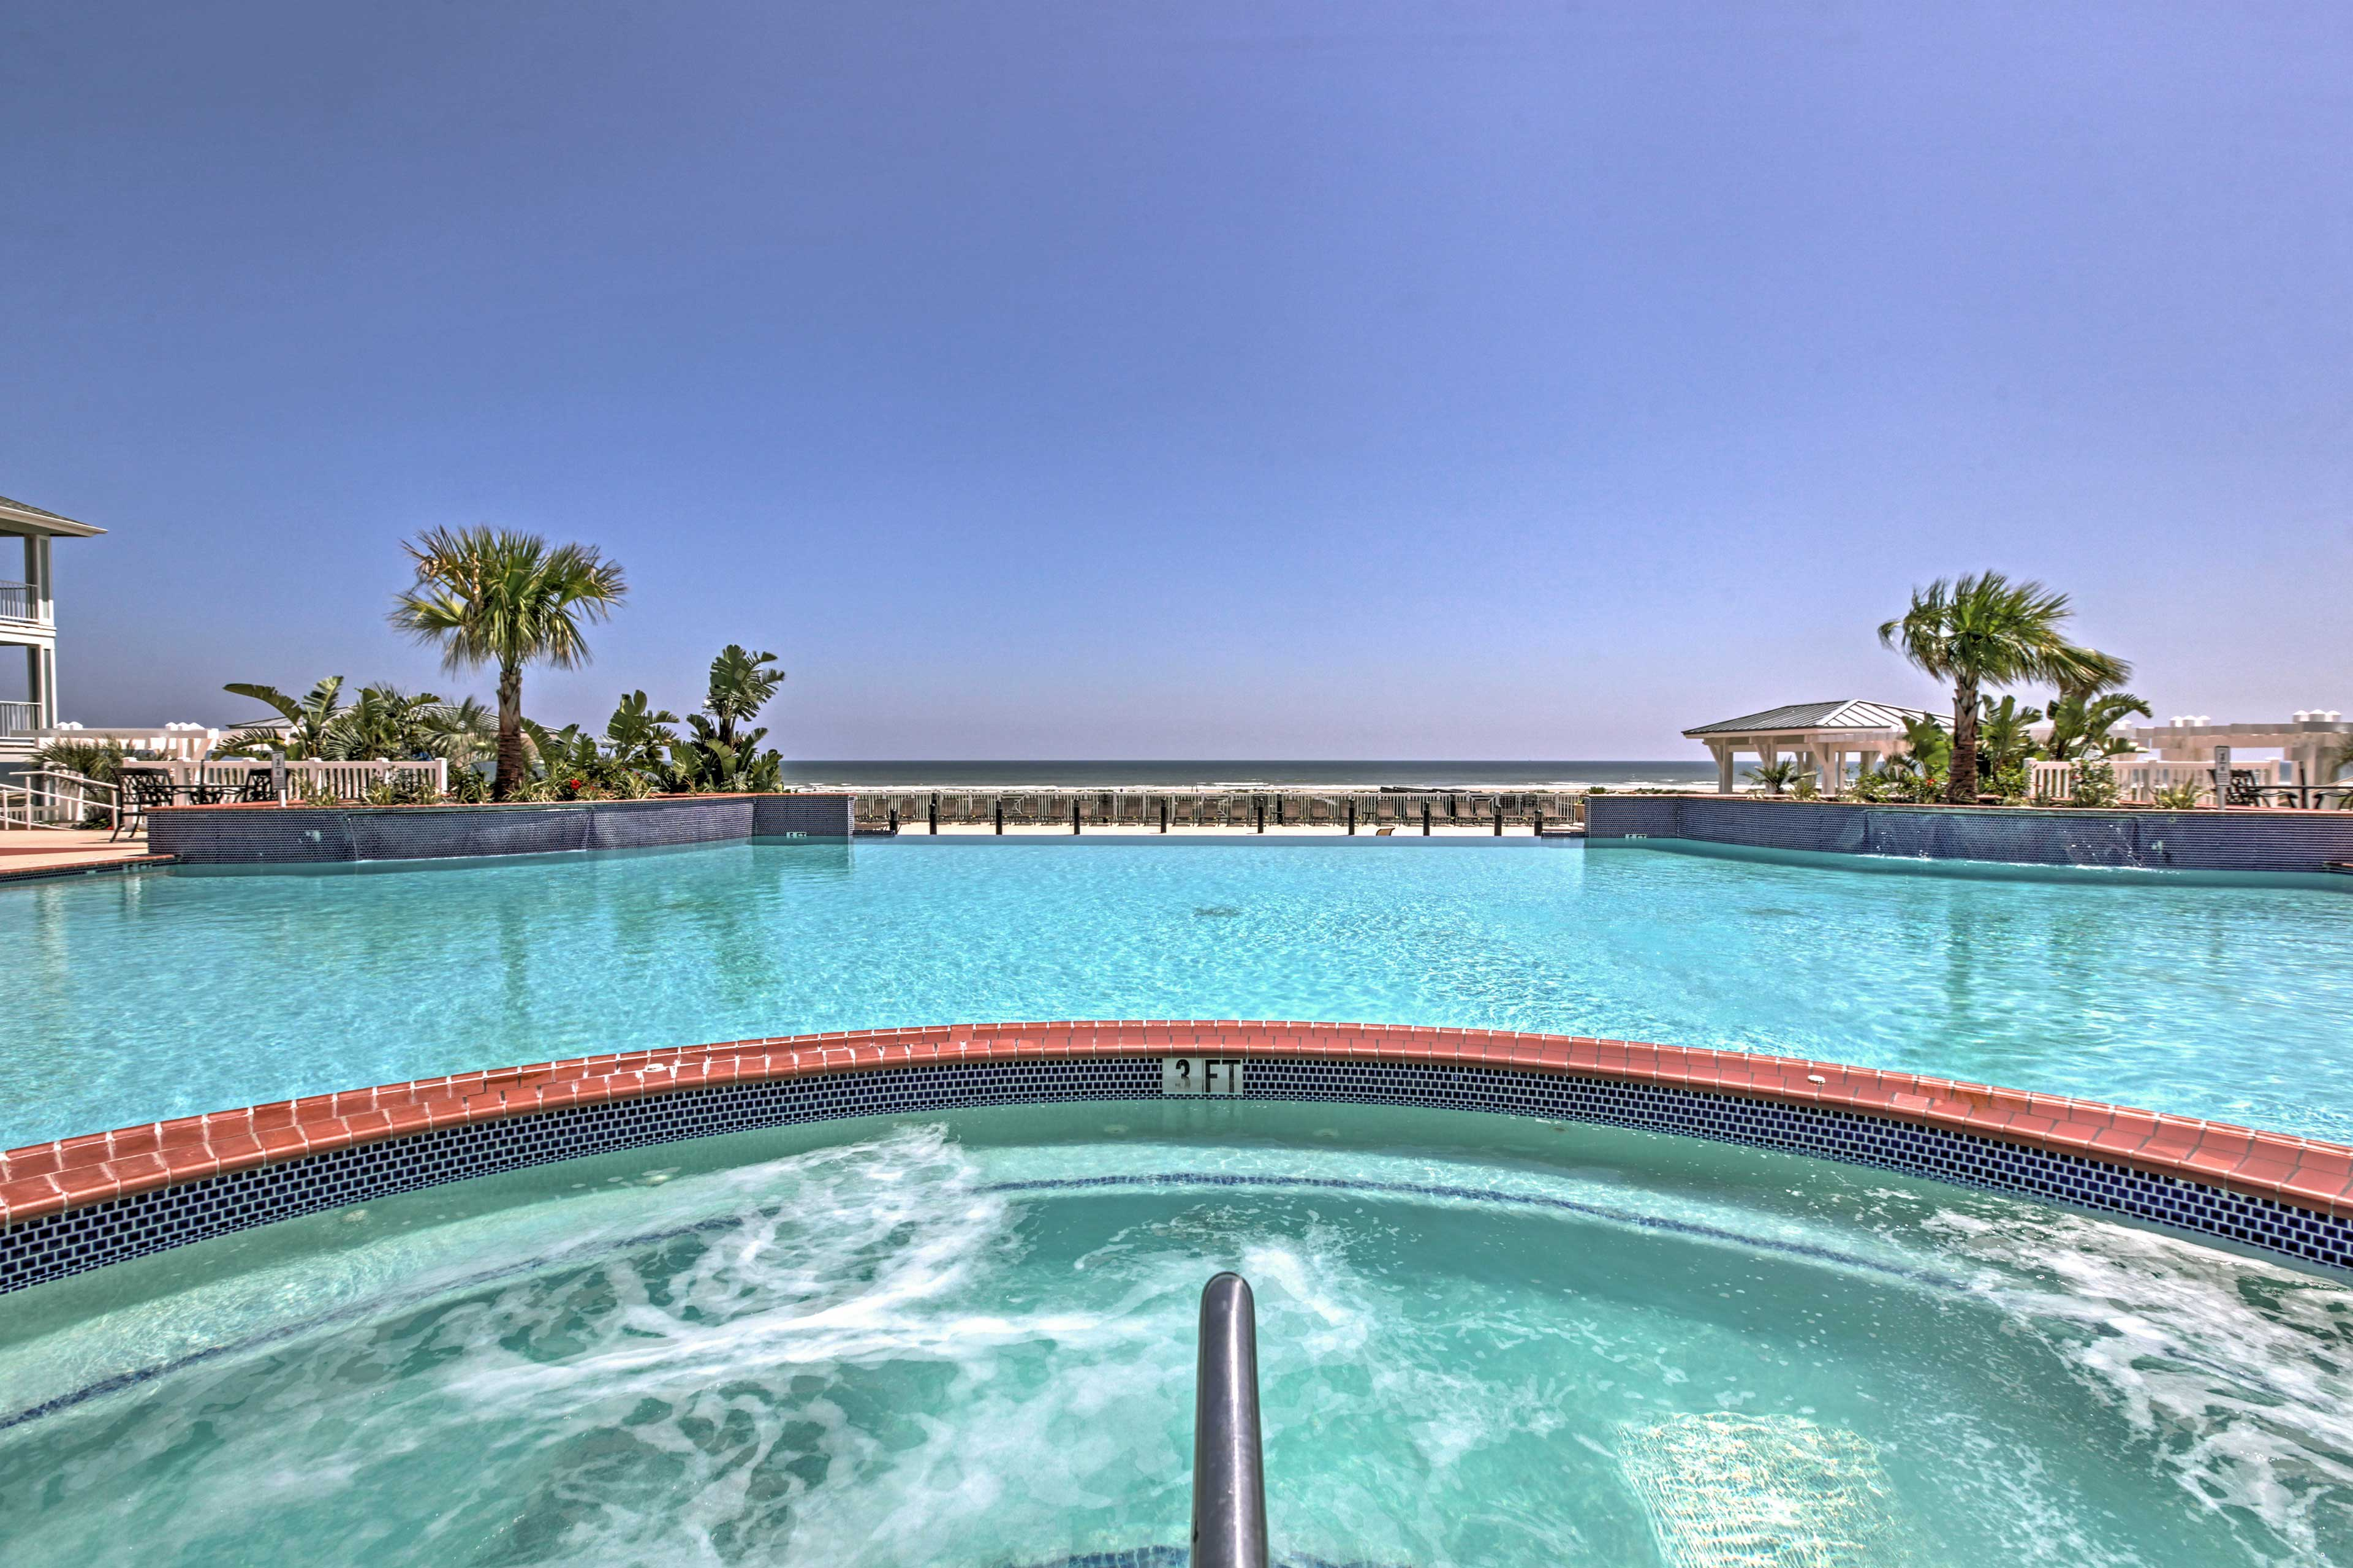 Ultimate relaxation awaits you by the pool and jacuzzi.